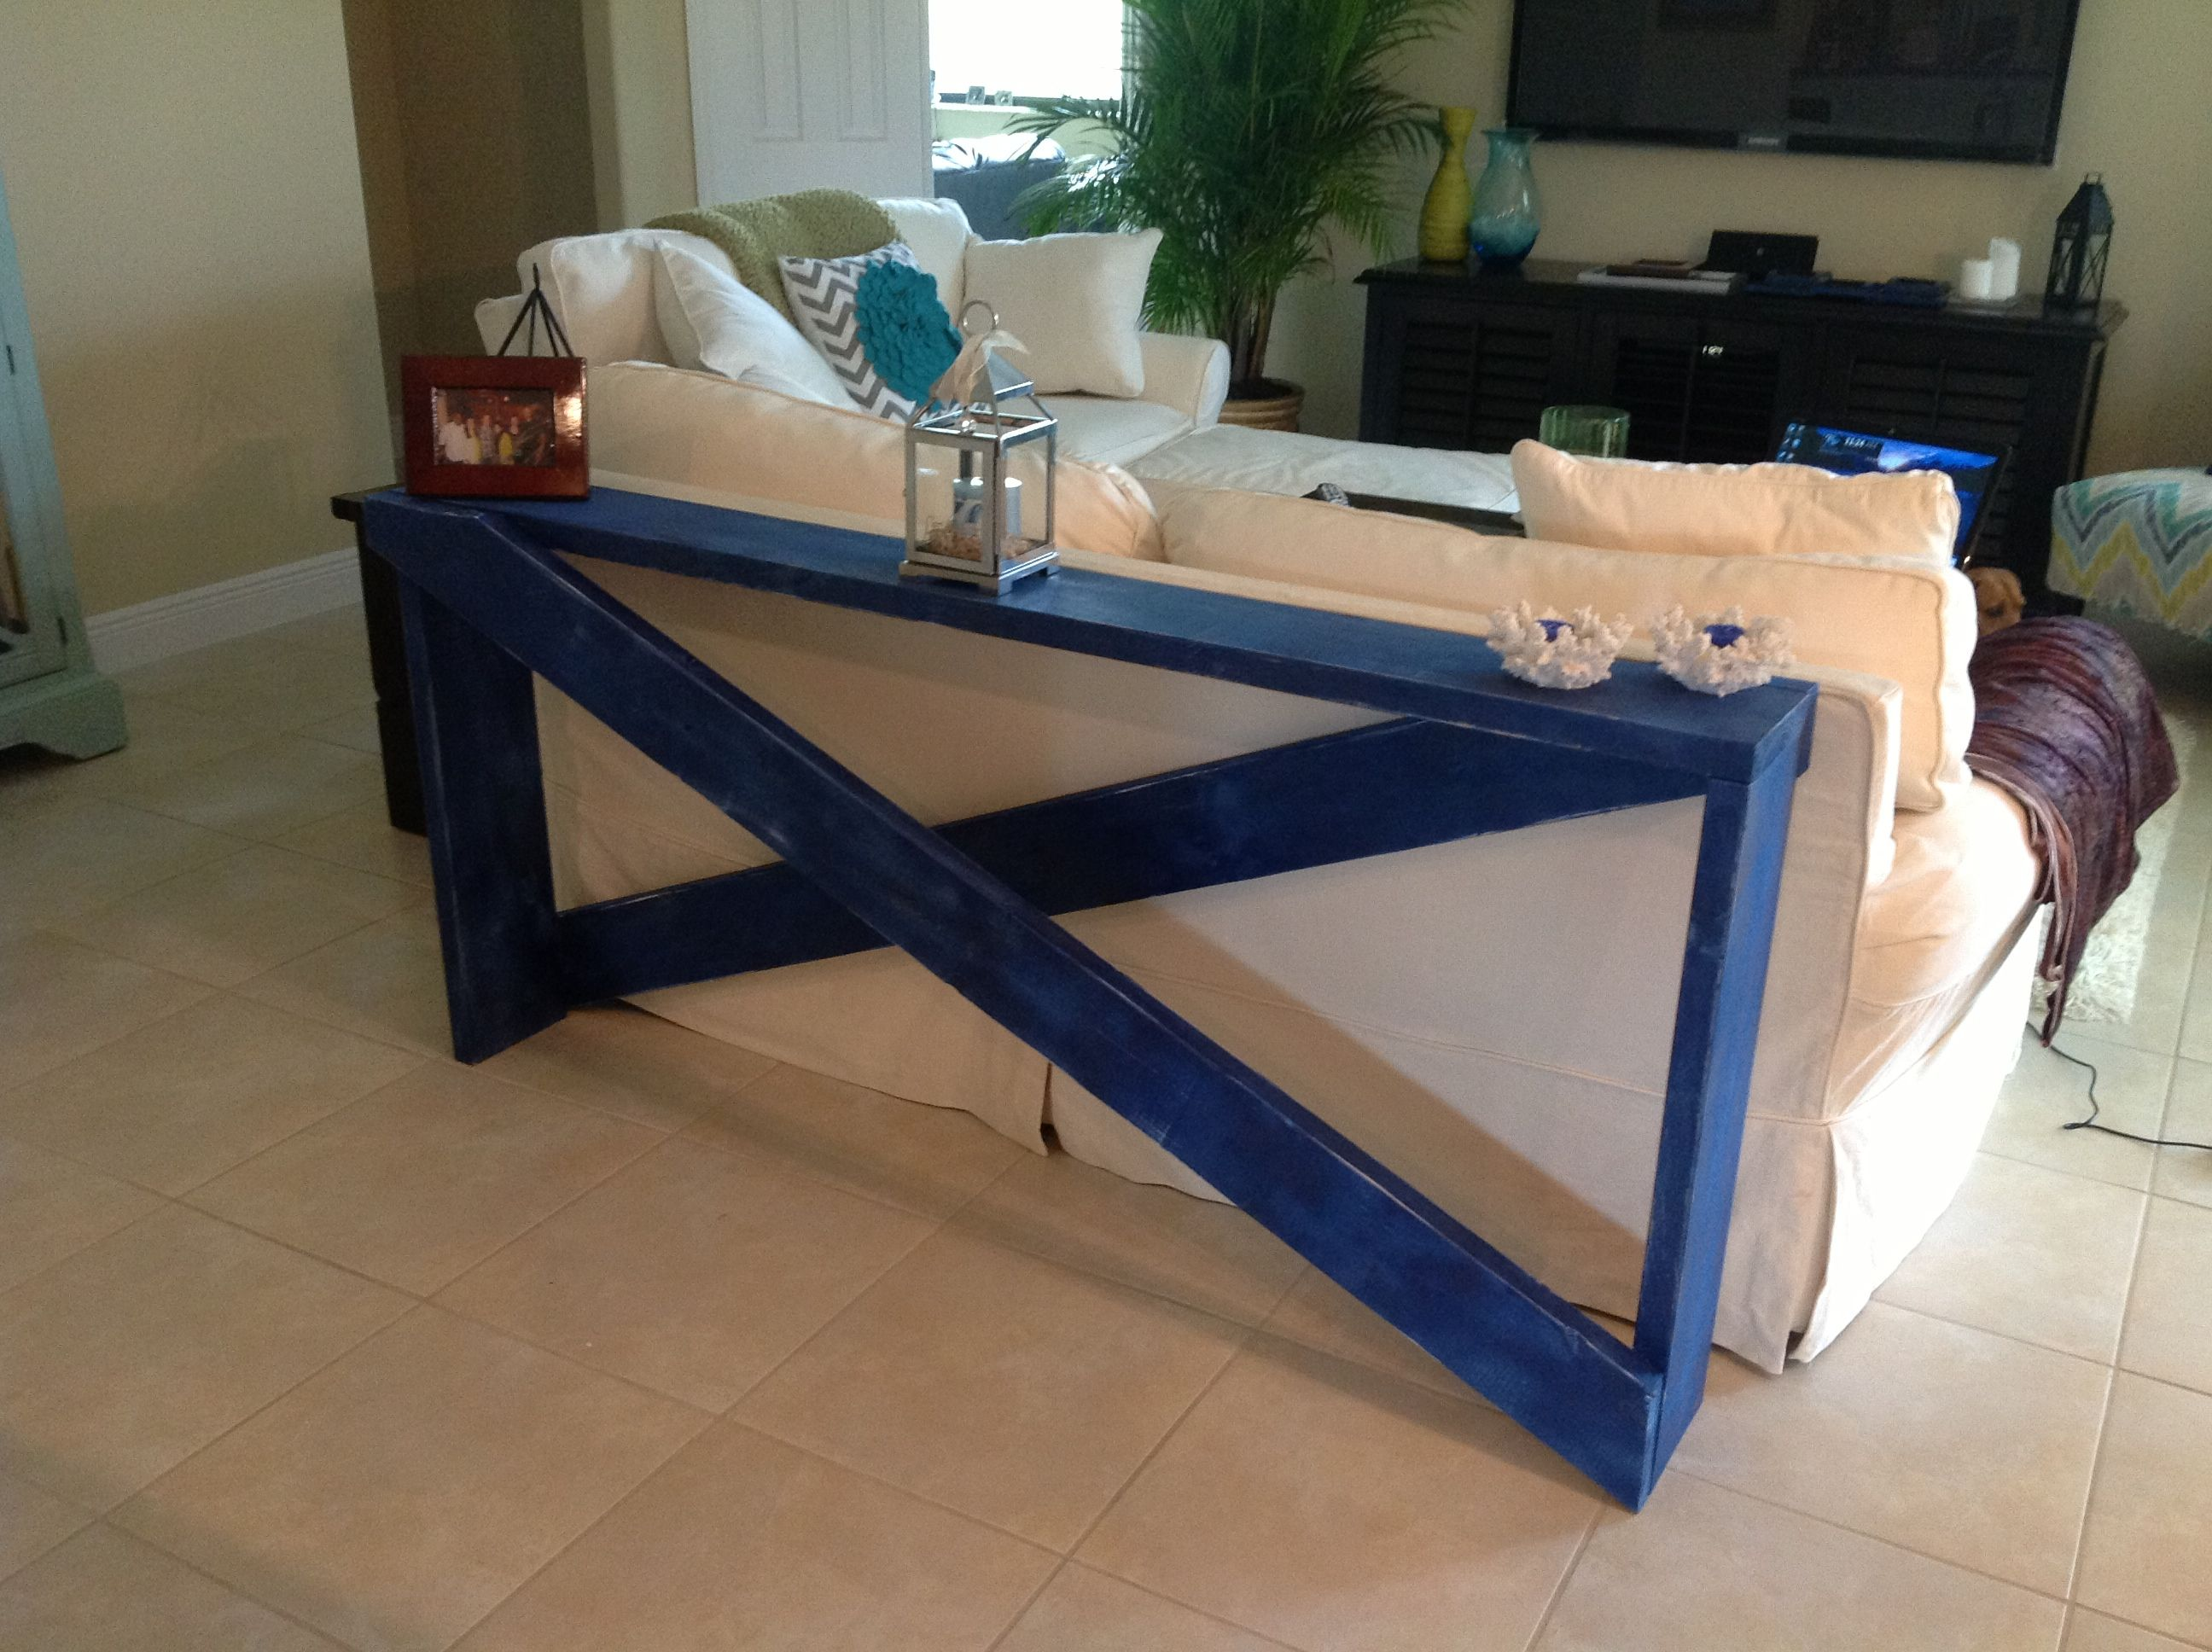 Make sofa table - I Would Place This Against The Wall Under Windows With Sofa In Front Then Add Plants Diy Behind The Sofa Table